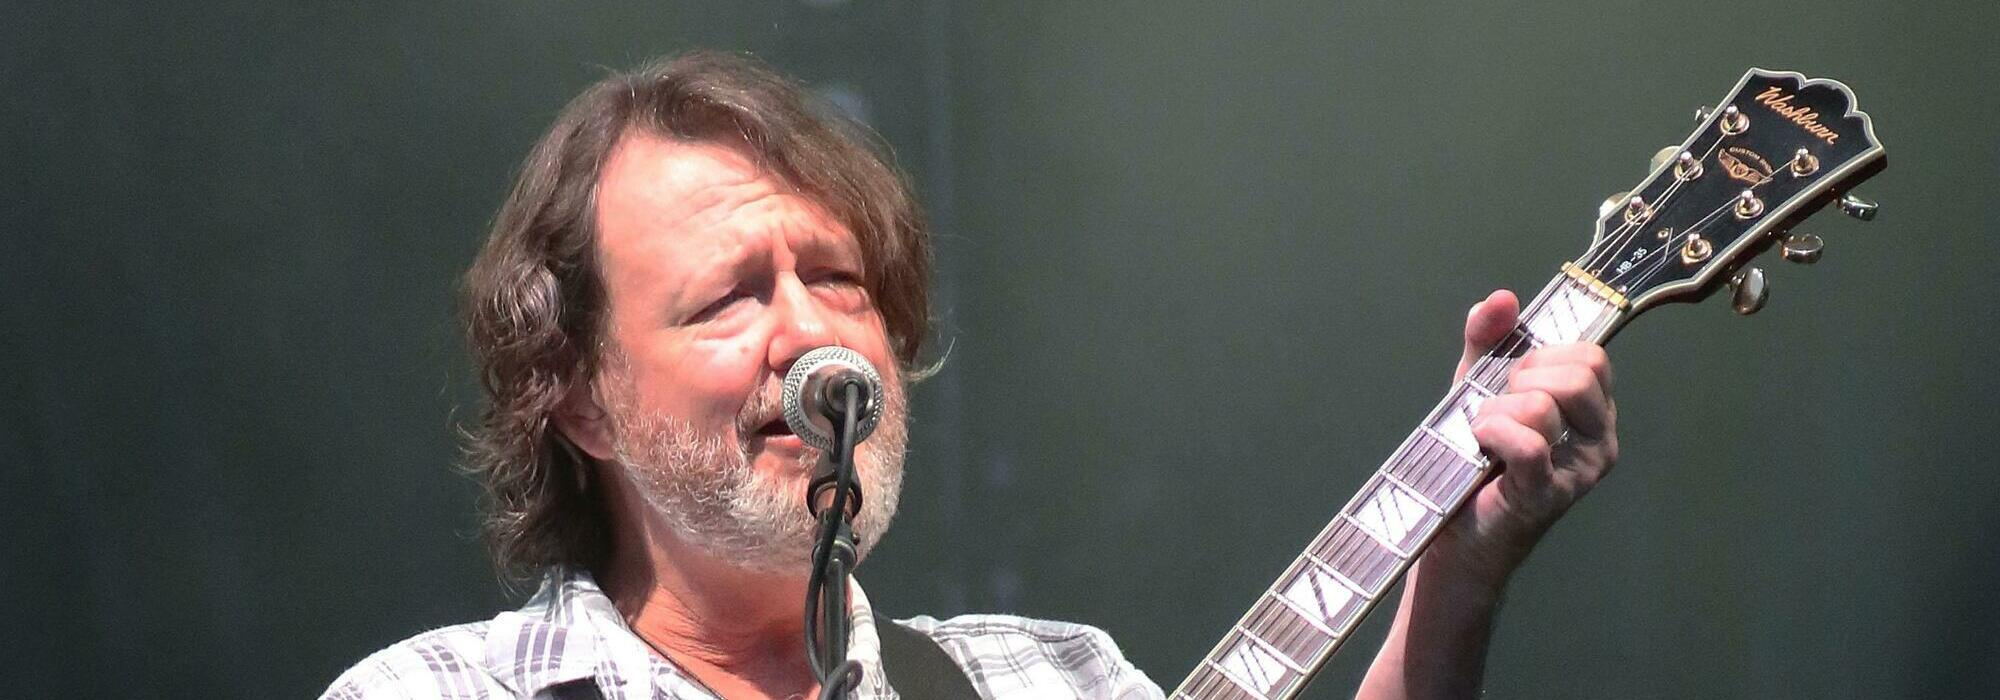 A Widespread Panic live event